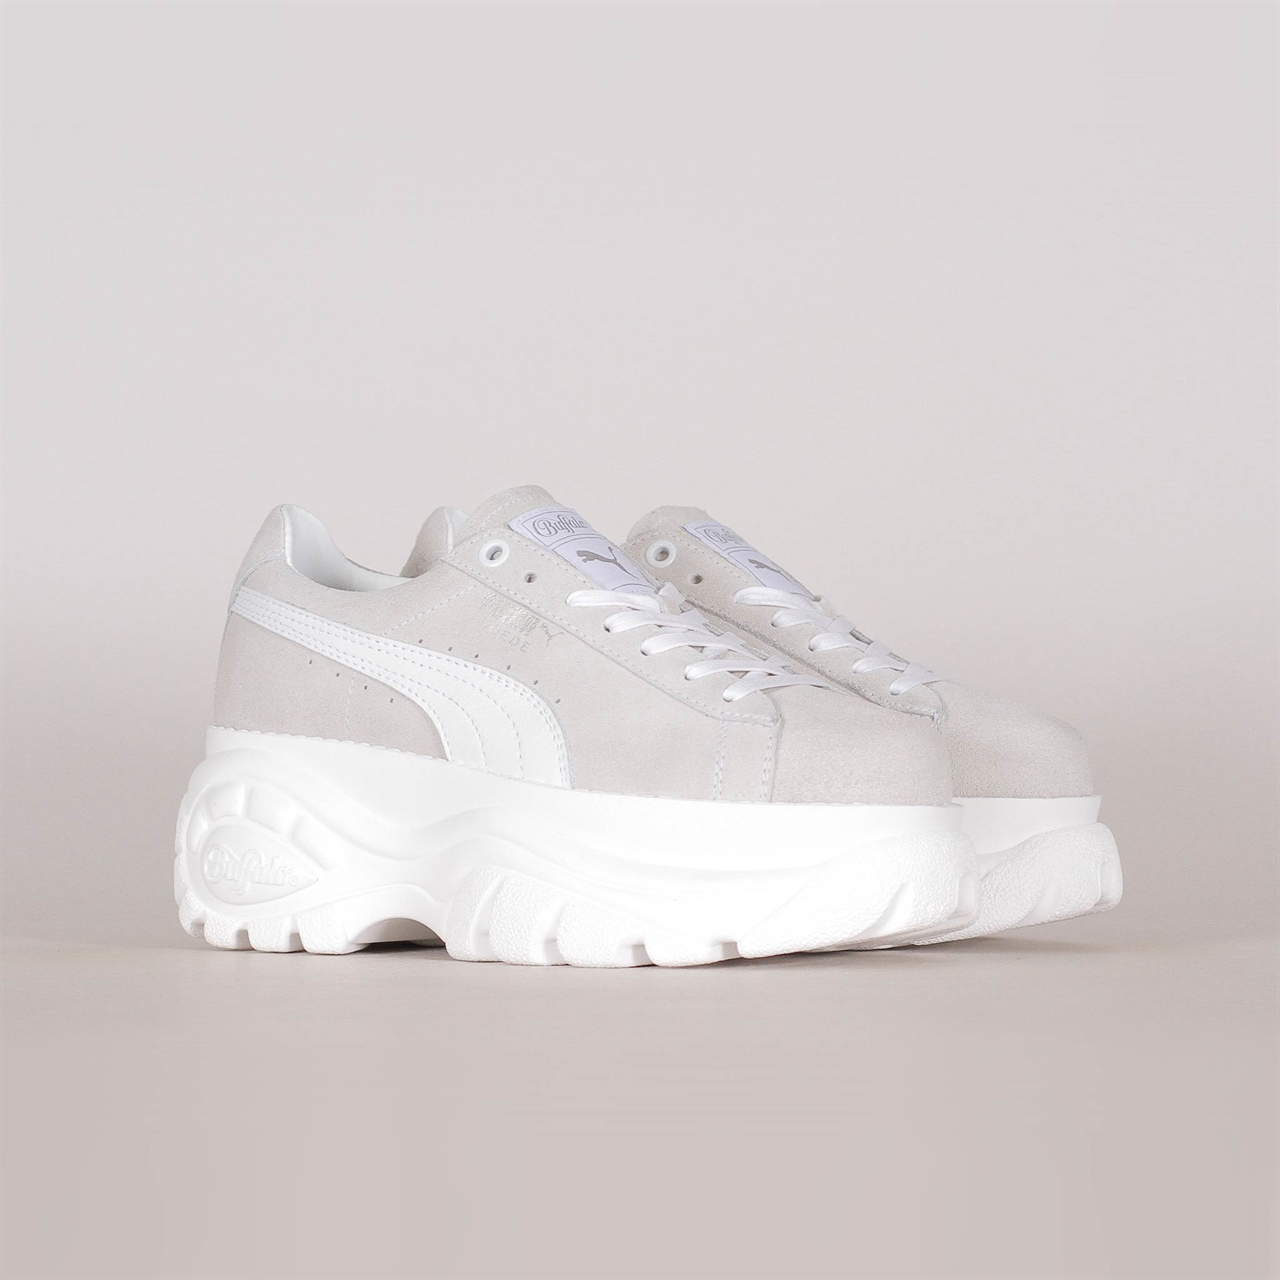 4589ce31b40c x Buffalo Suede Classic White (368499-001). 159 159EUR   a pair. Colorway   Puma ...